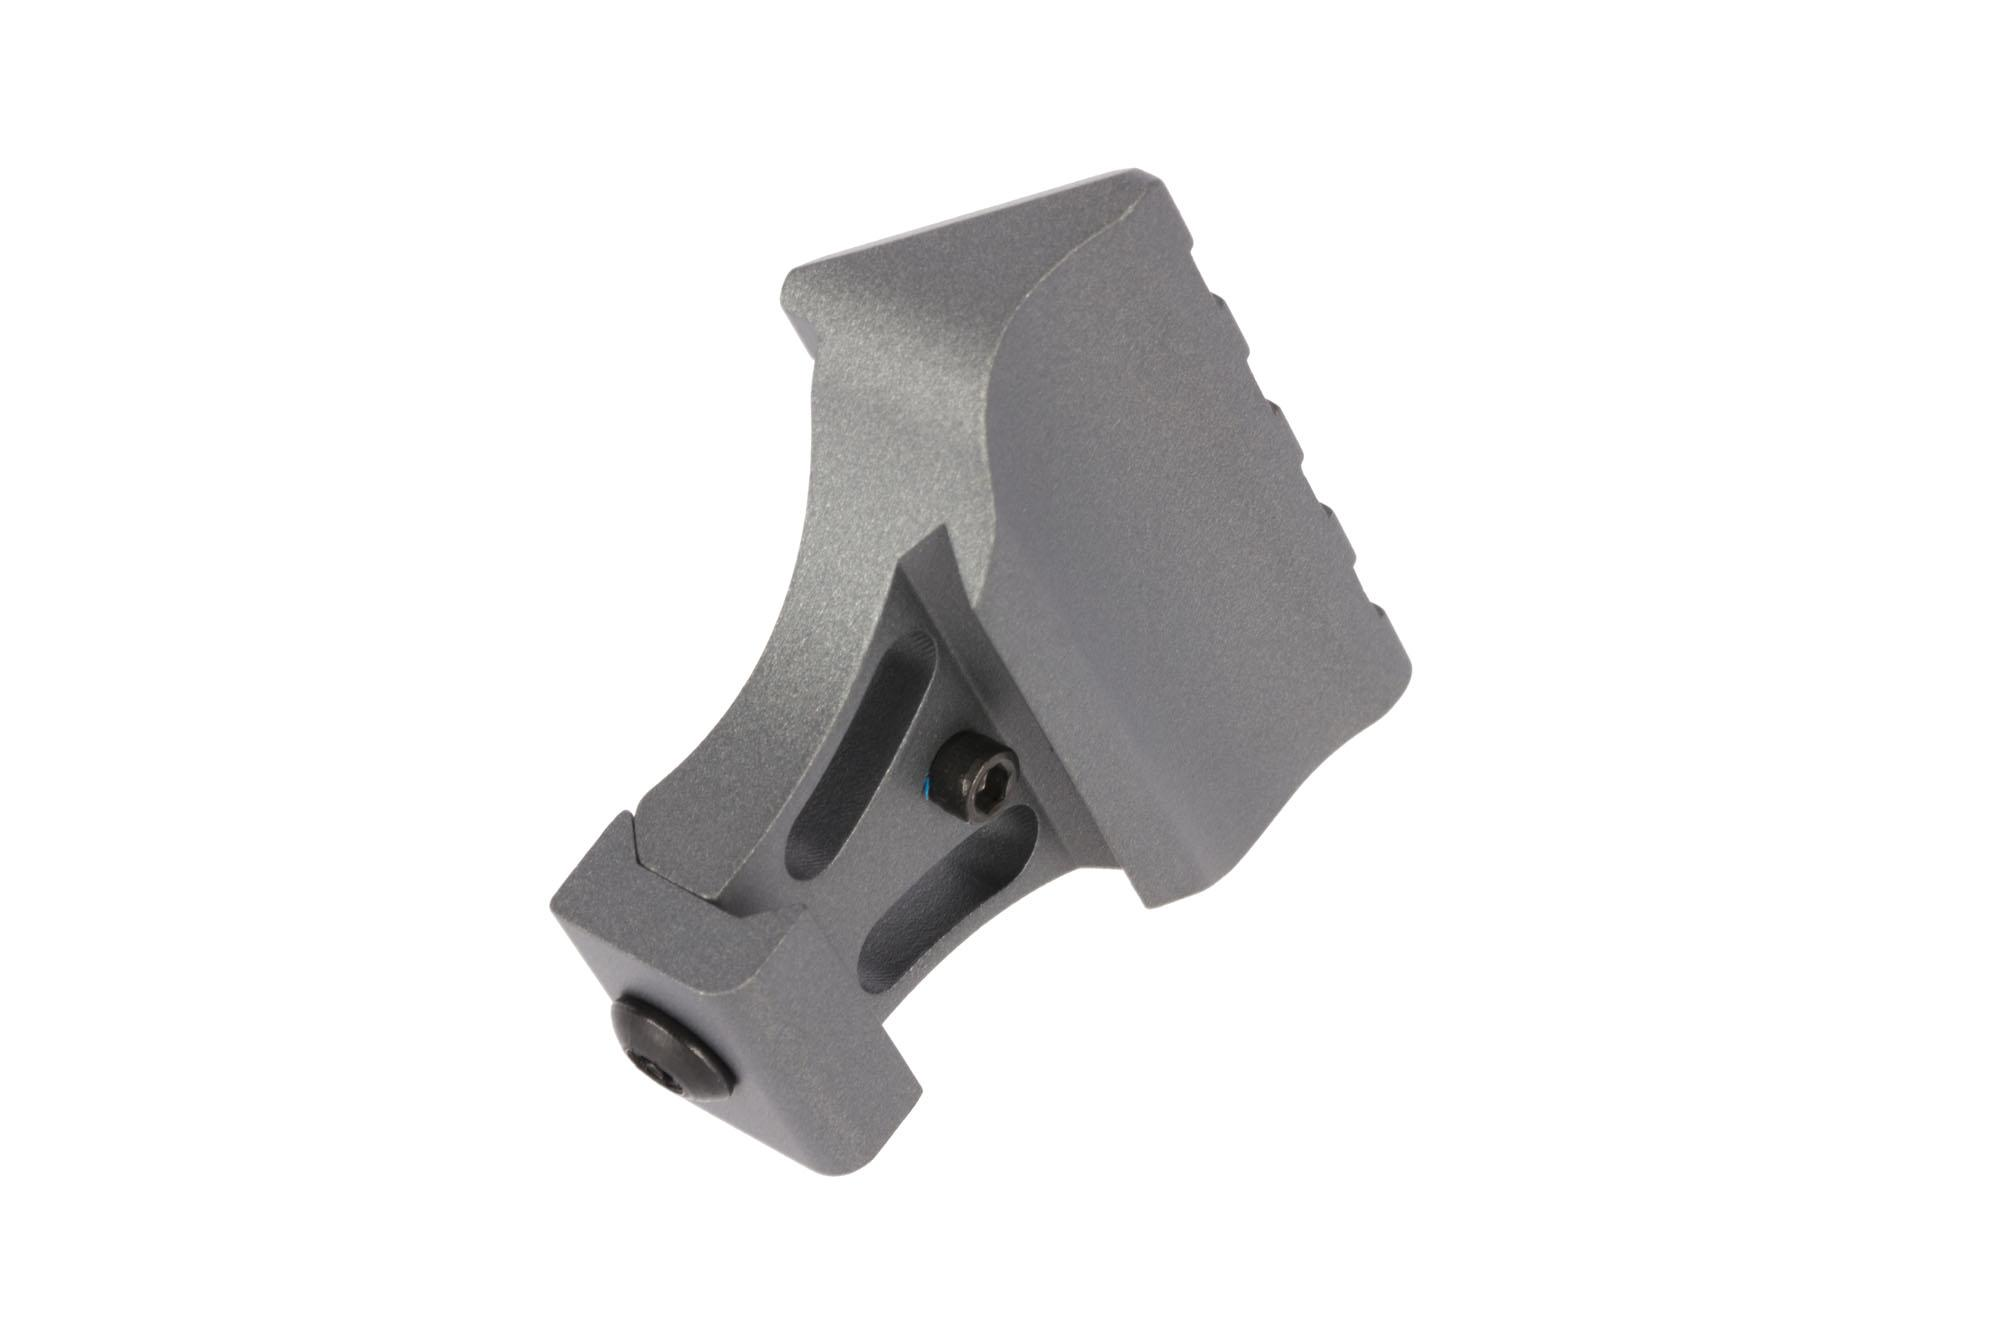 Warne Scope Mounts Picatinny Side Mount Adapter - 45-degree - Tactical Gray